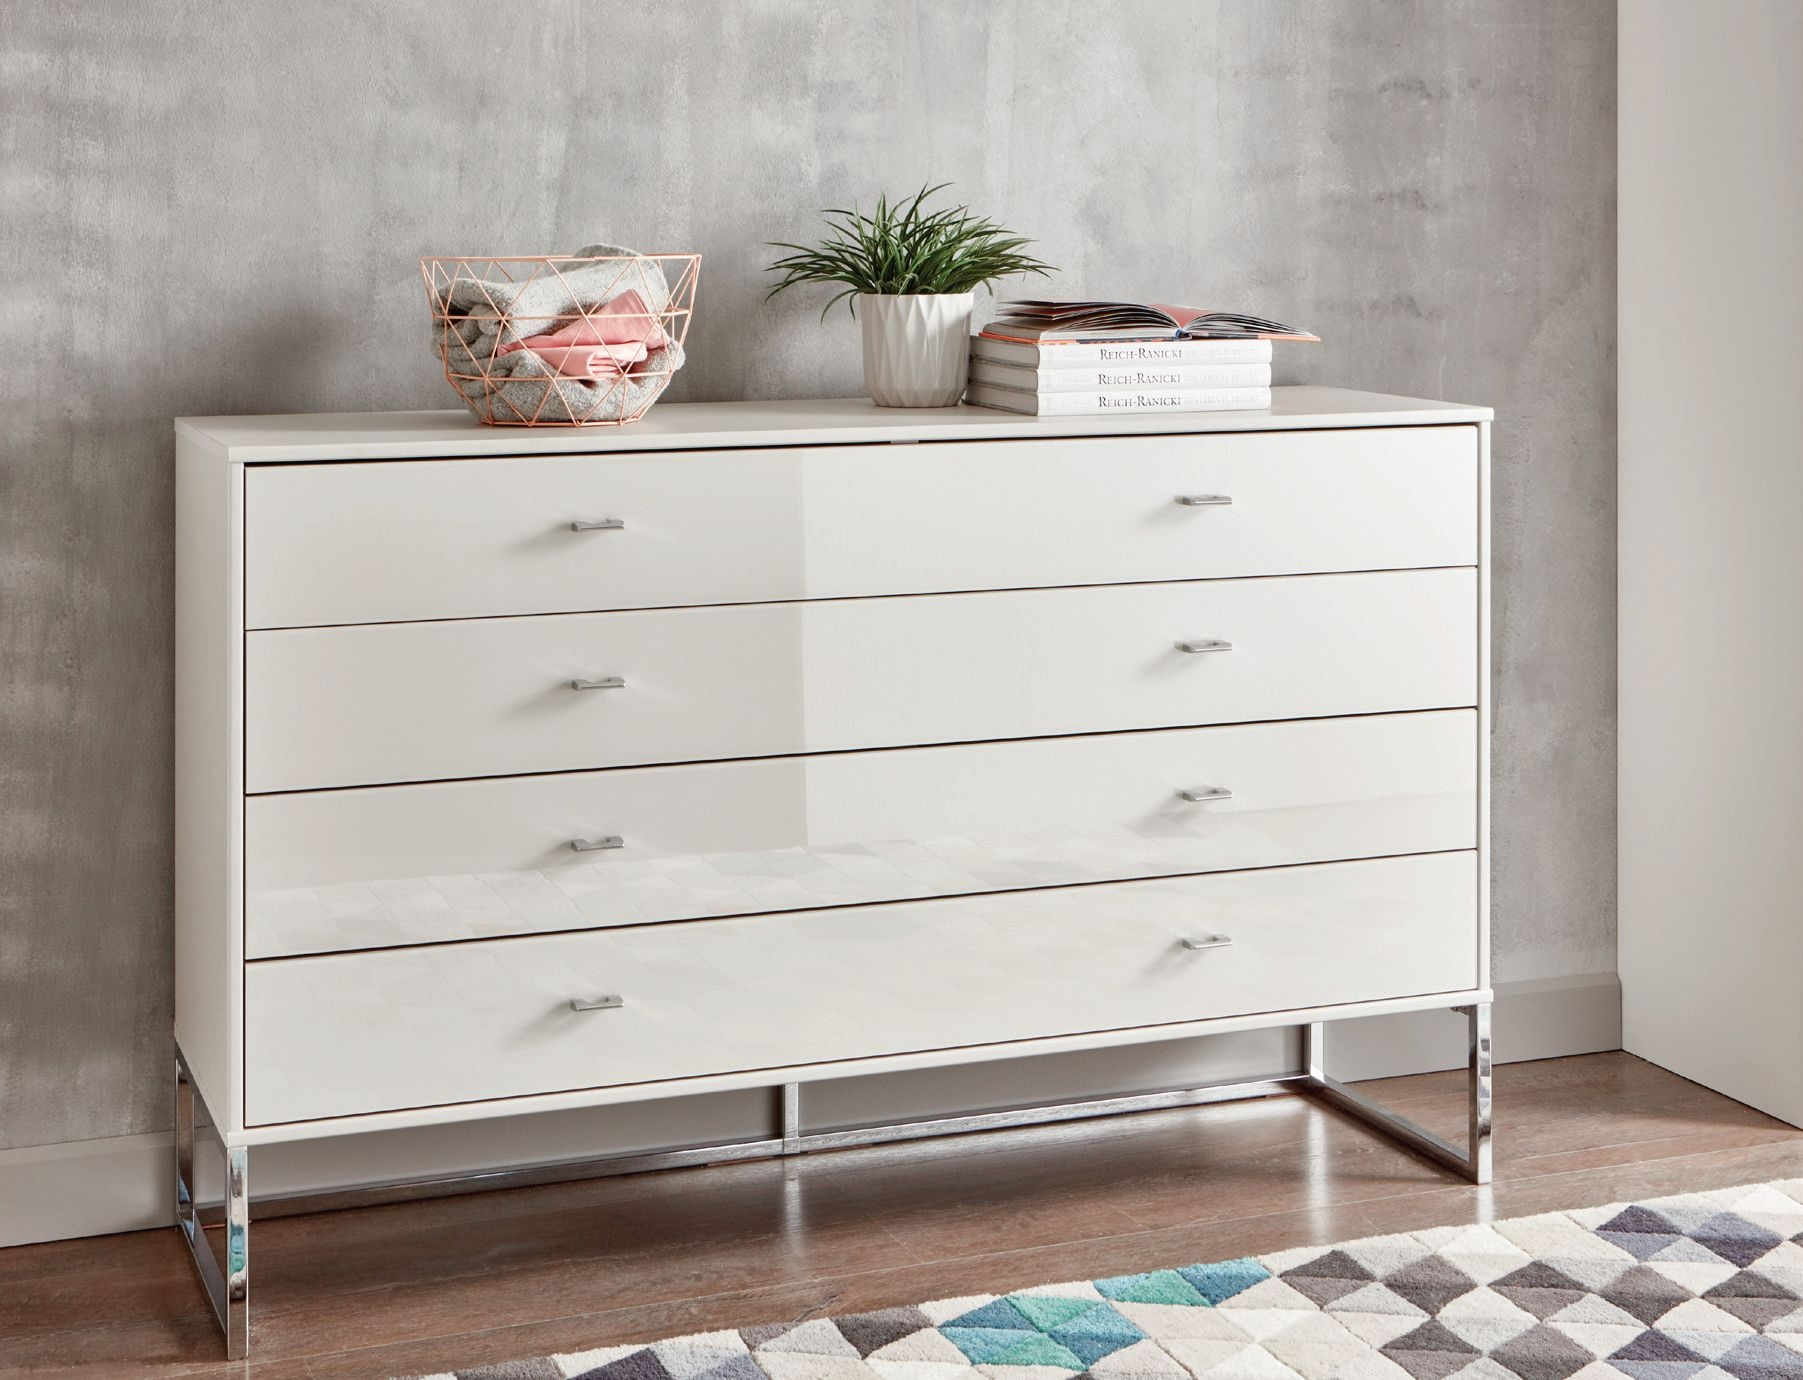 Wiemann Vigo 4 Drawer Chest in Champagne - W 60cm